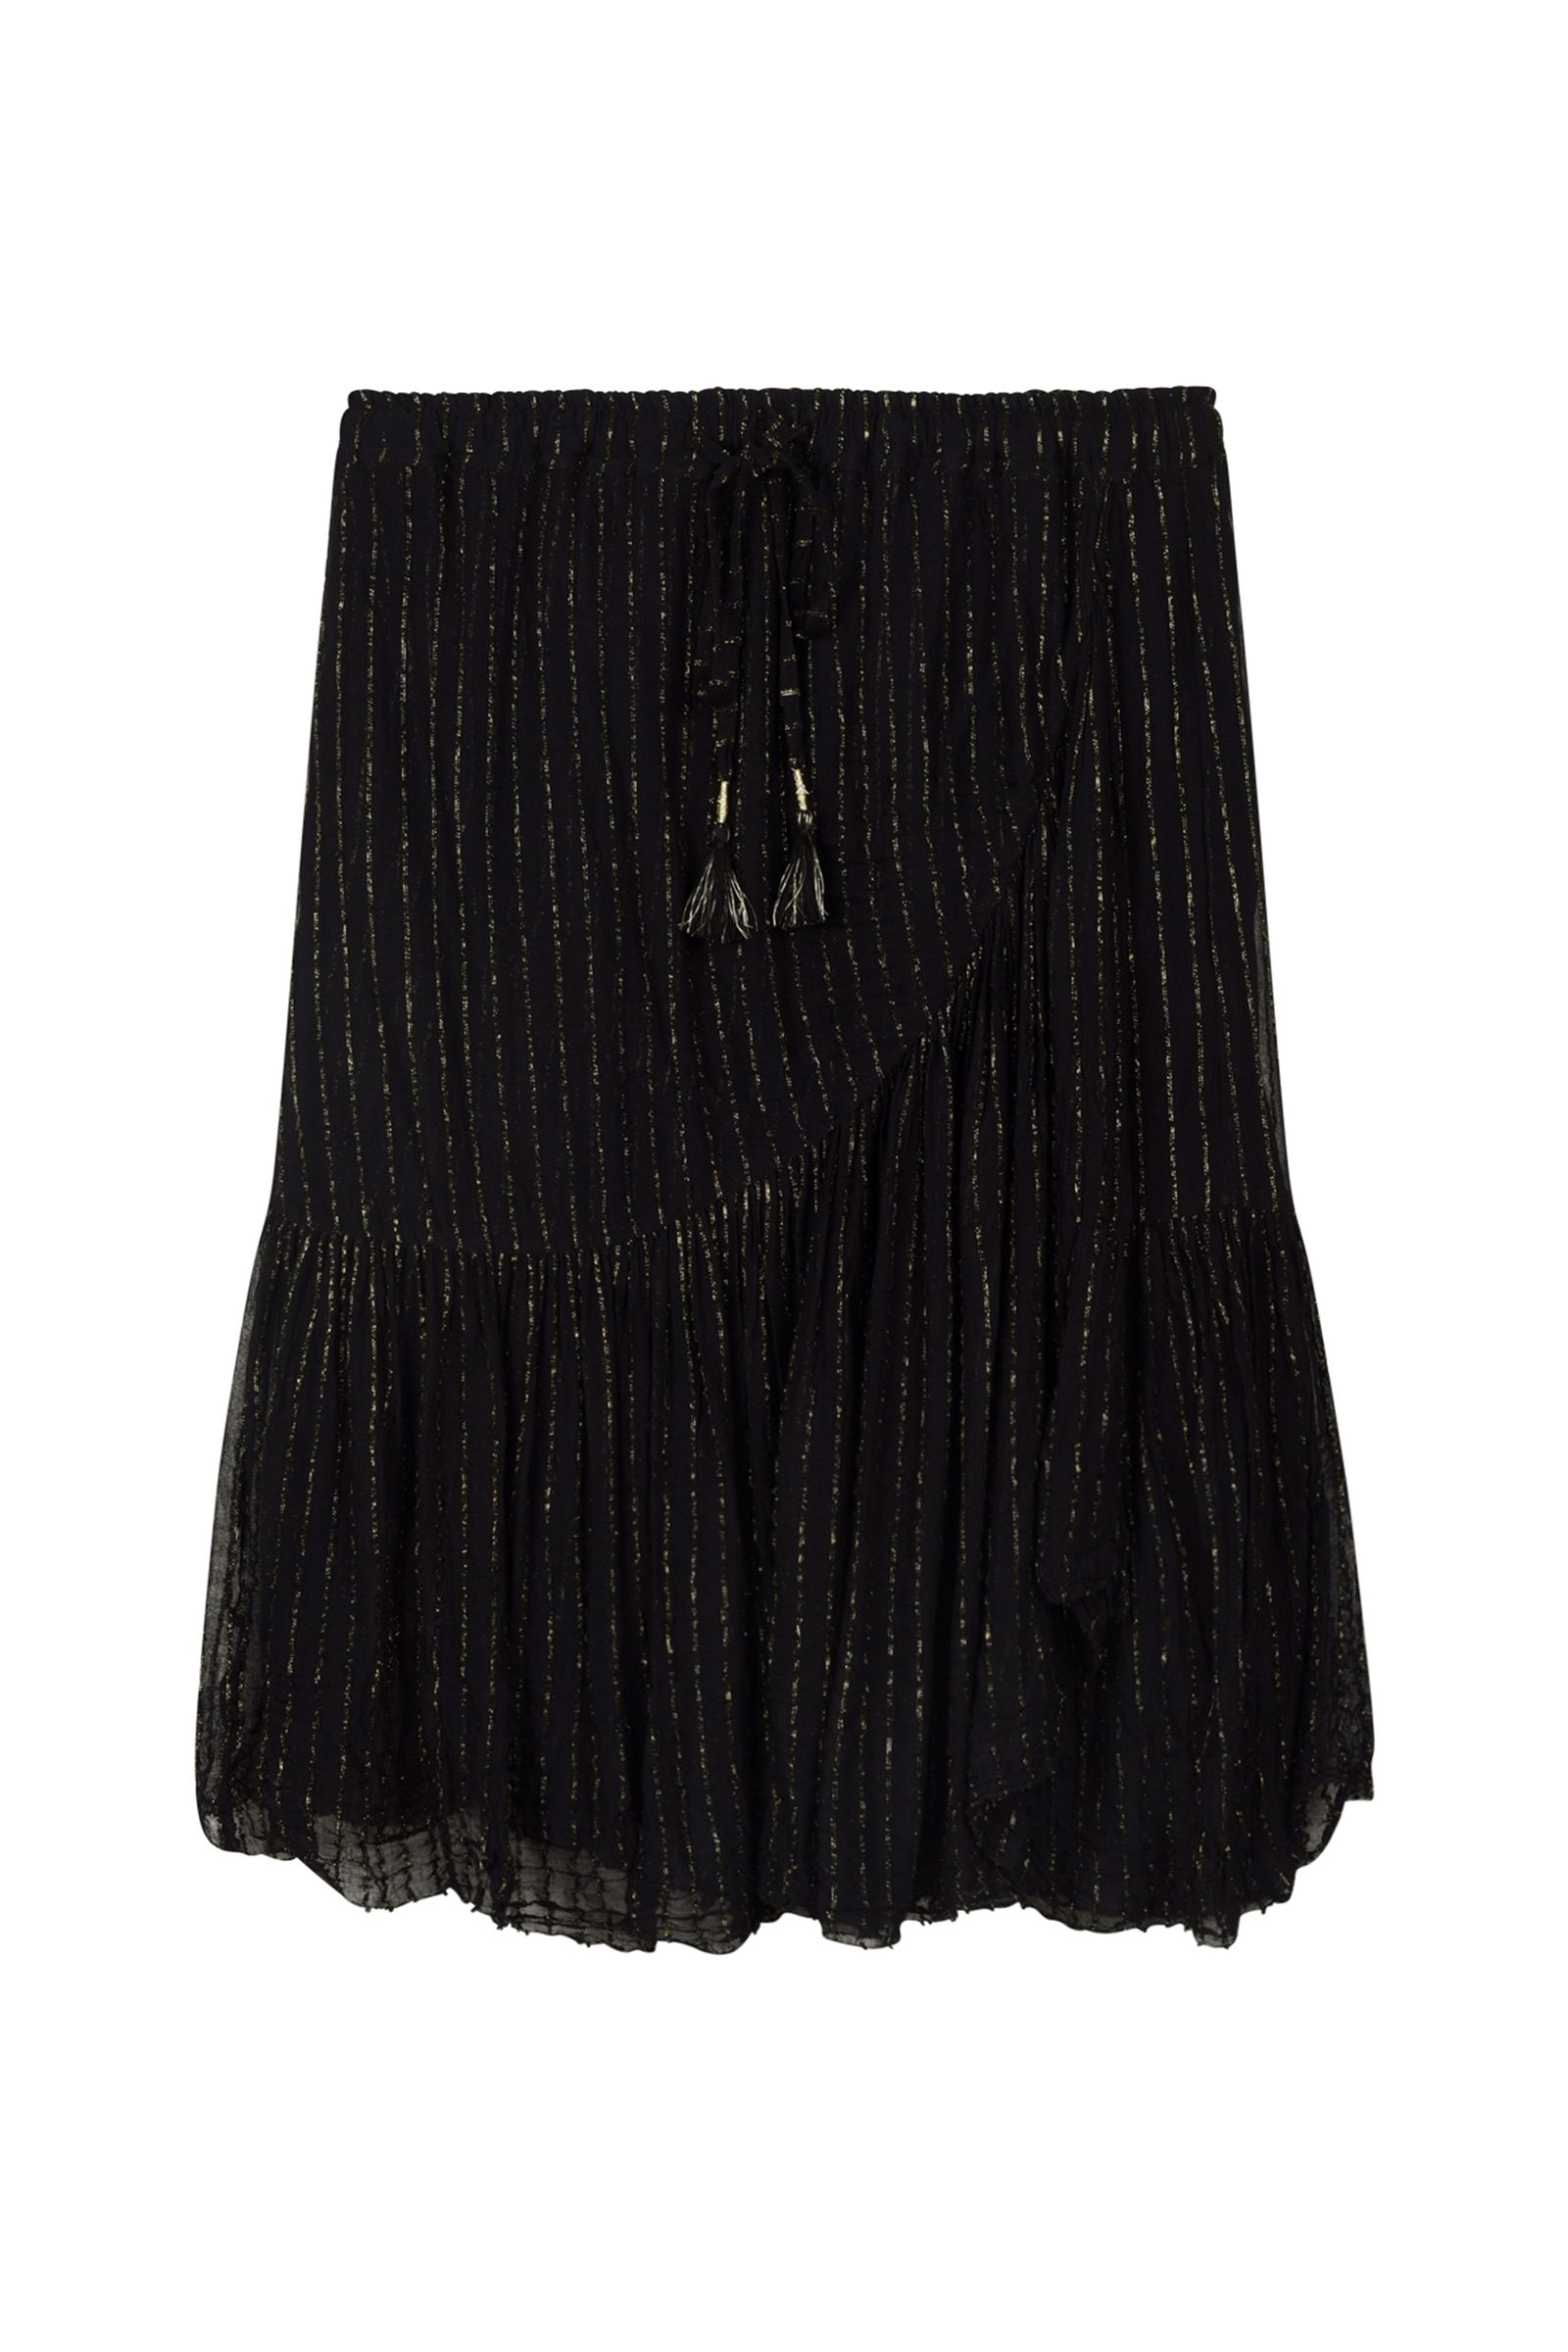 Image 4 du produit Jolly Lurex Skirt